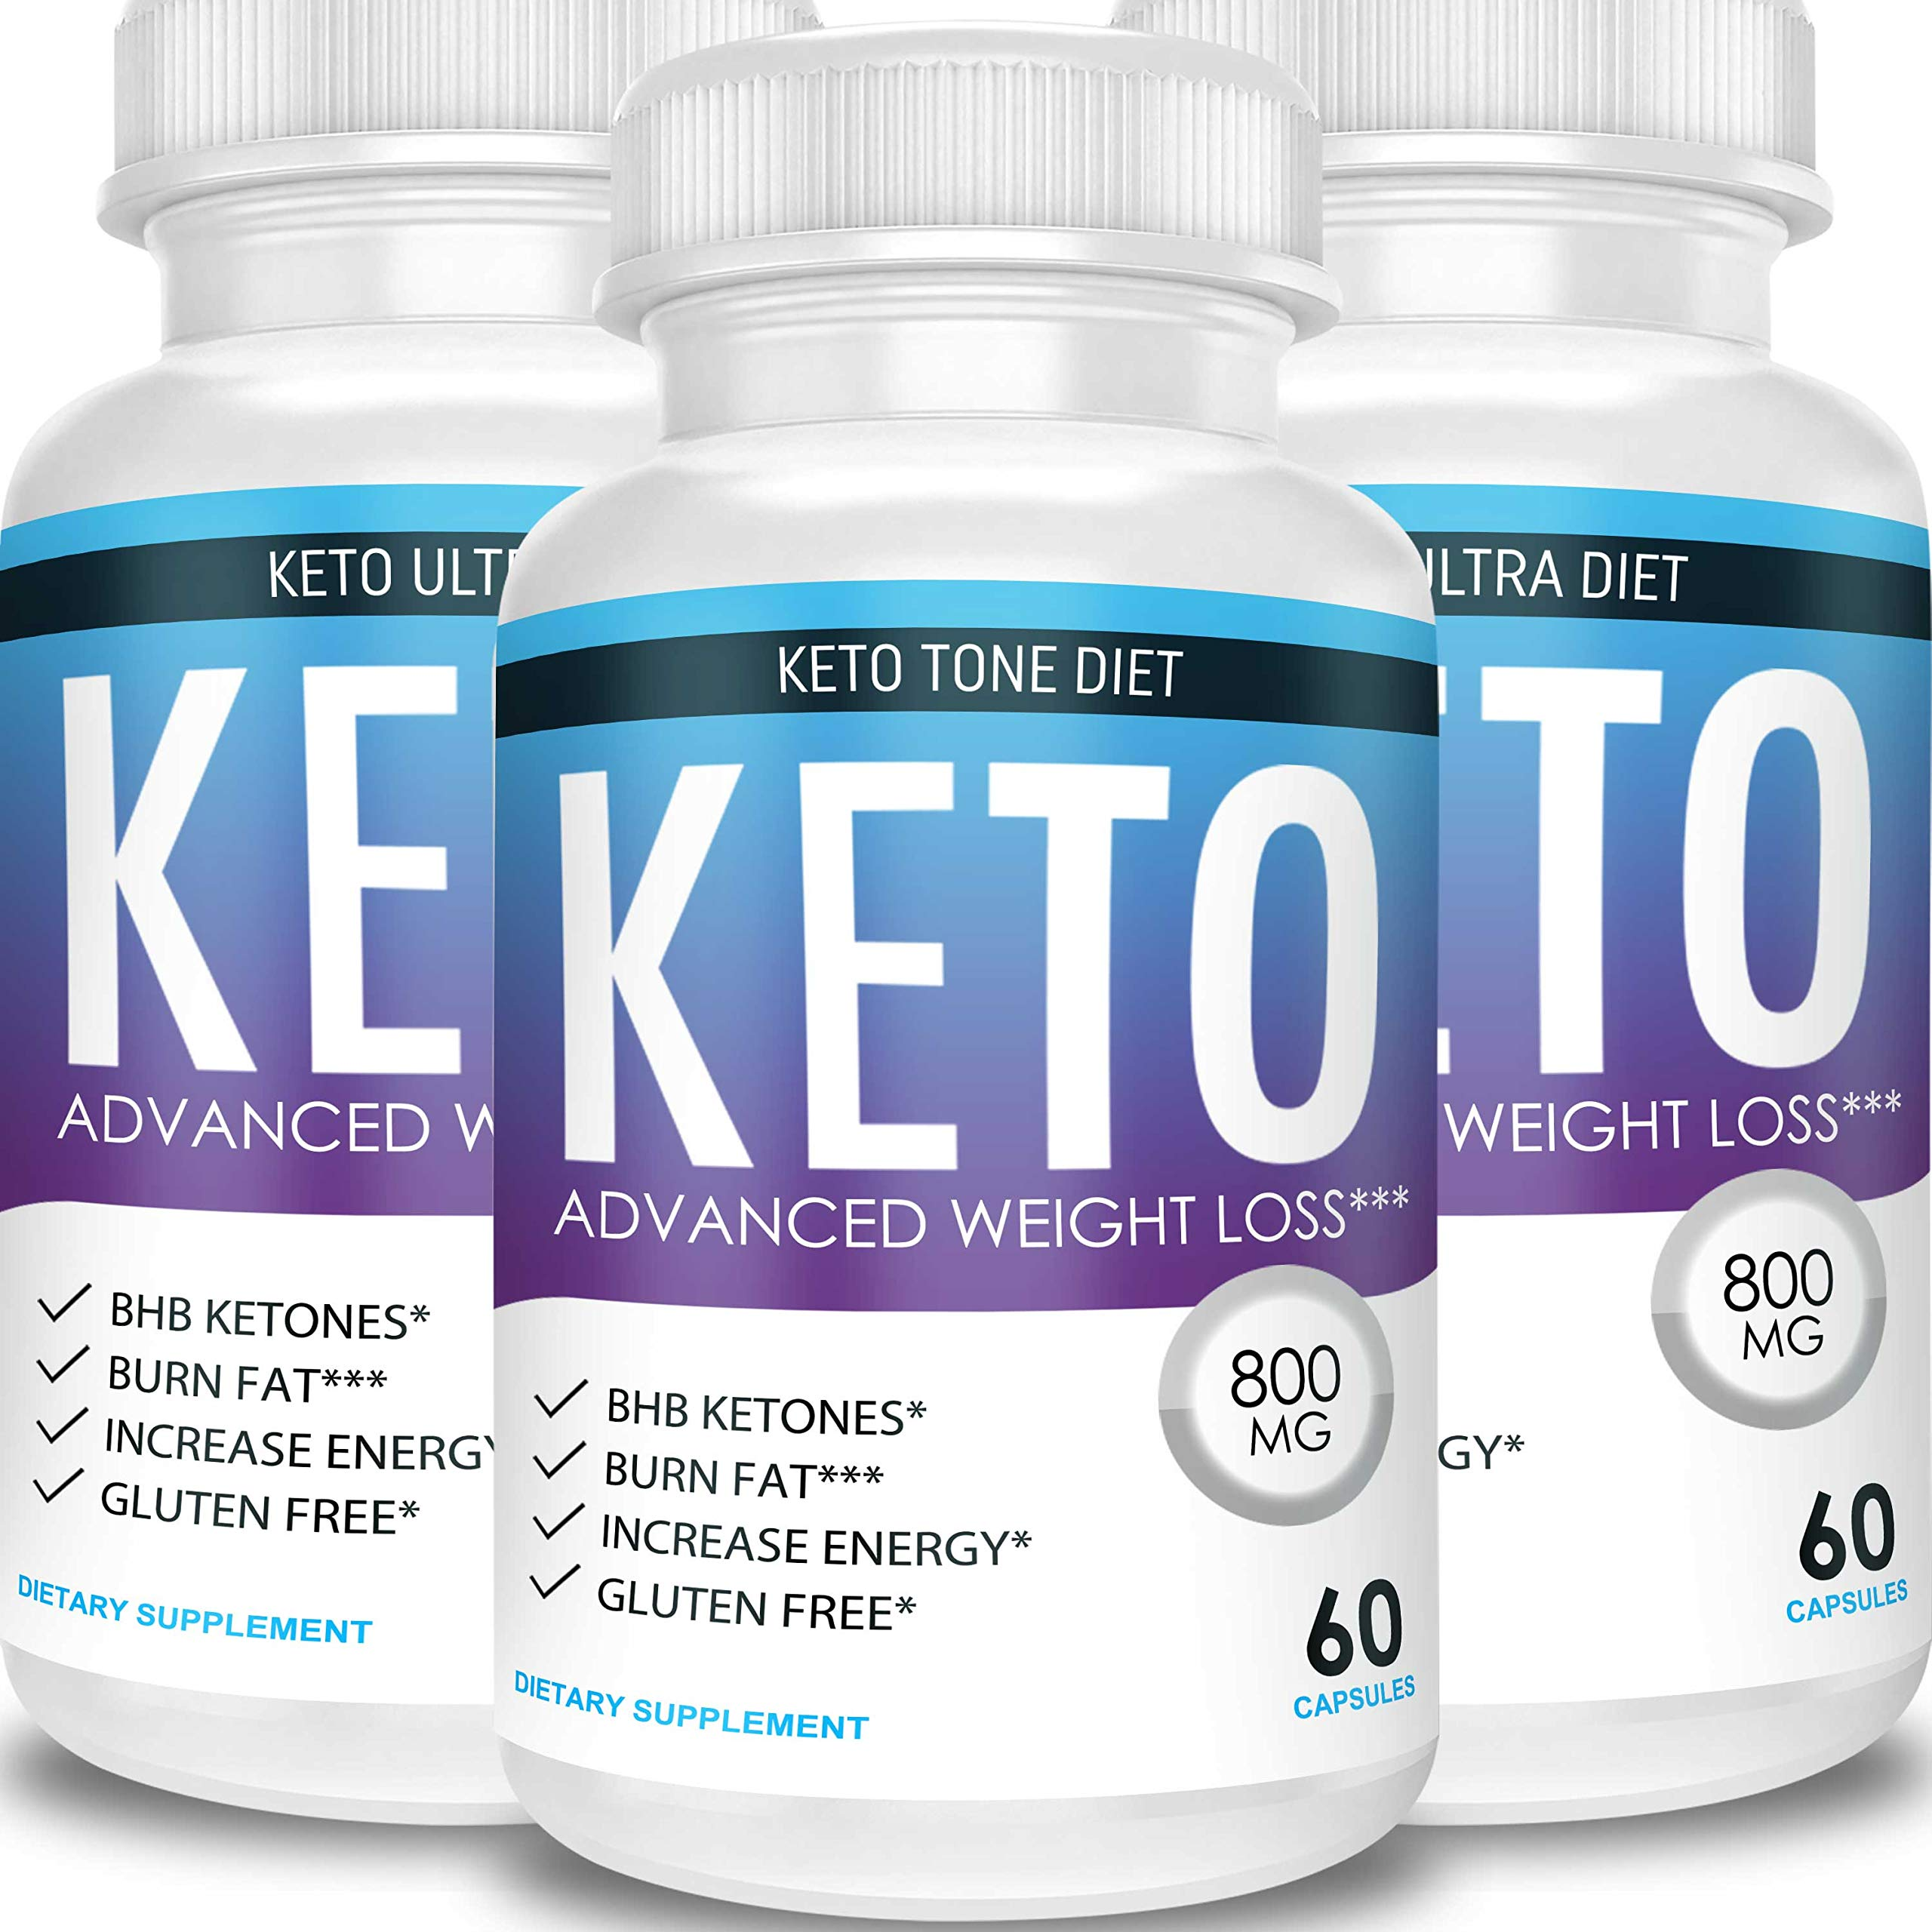 Keto Tone Diet - Advanced Weight Loss - Ketosis Supplement (3 Month Supply) by Keto Tone Diet